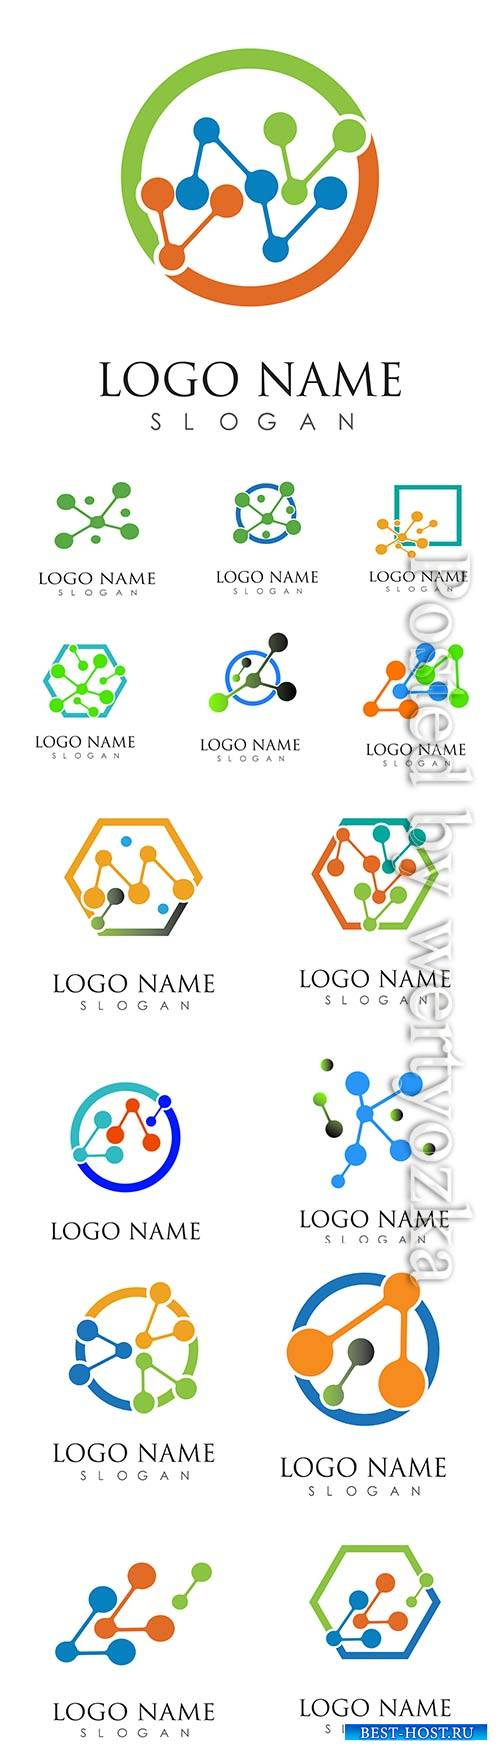 Molecule logo vector icon illustration design template